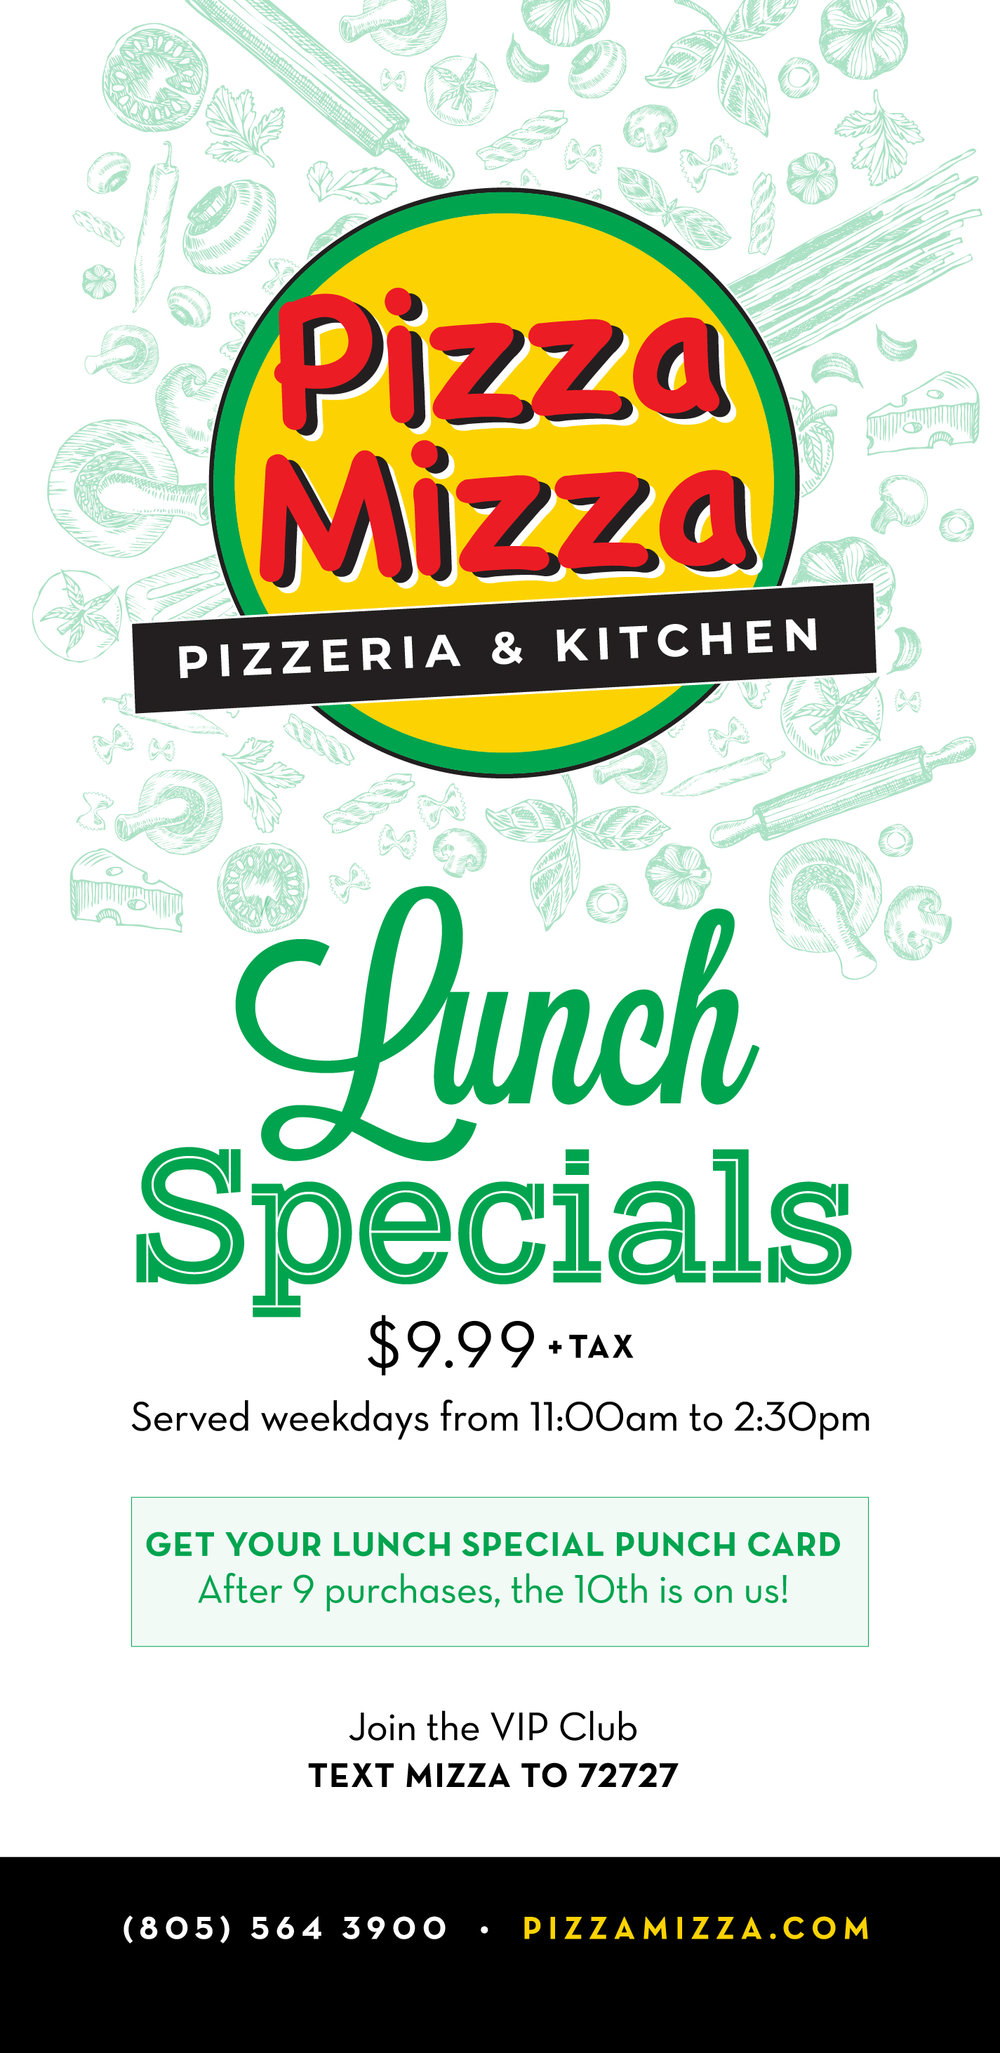 Pizza Mizza Lunch Specials Menu